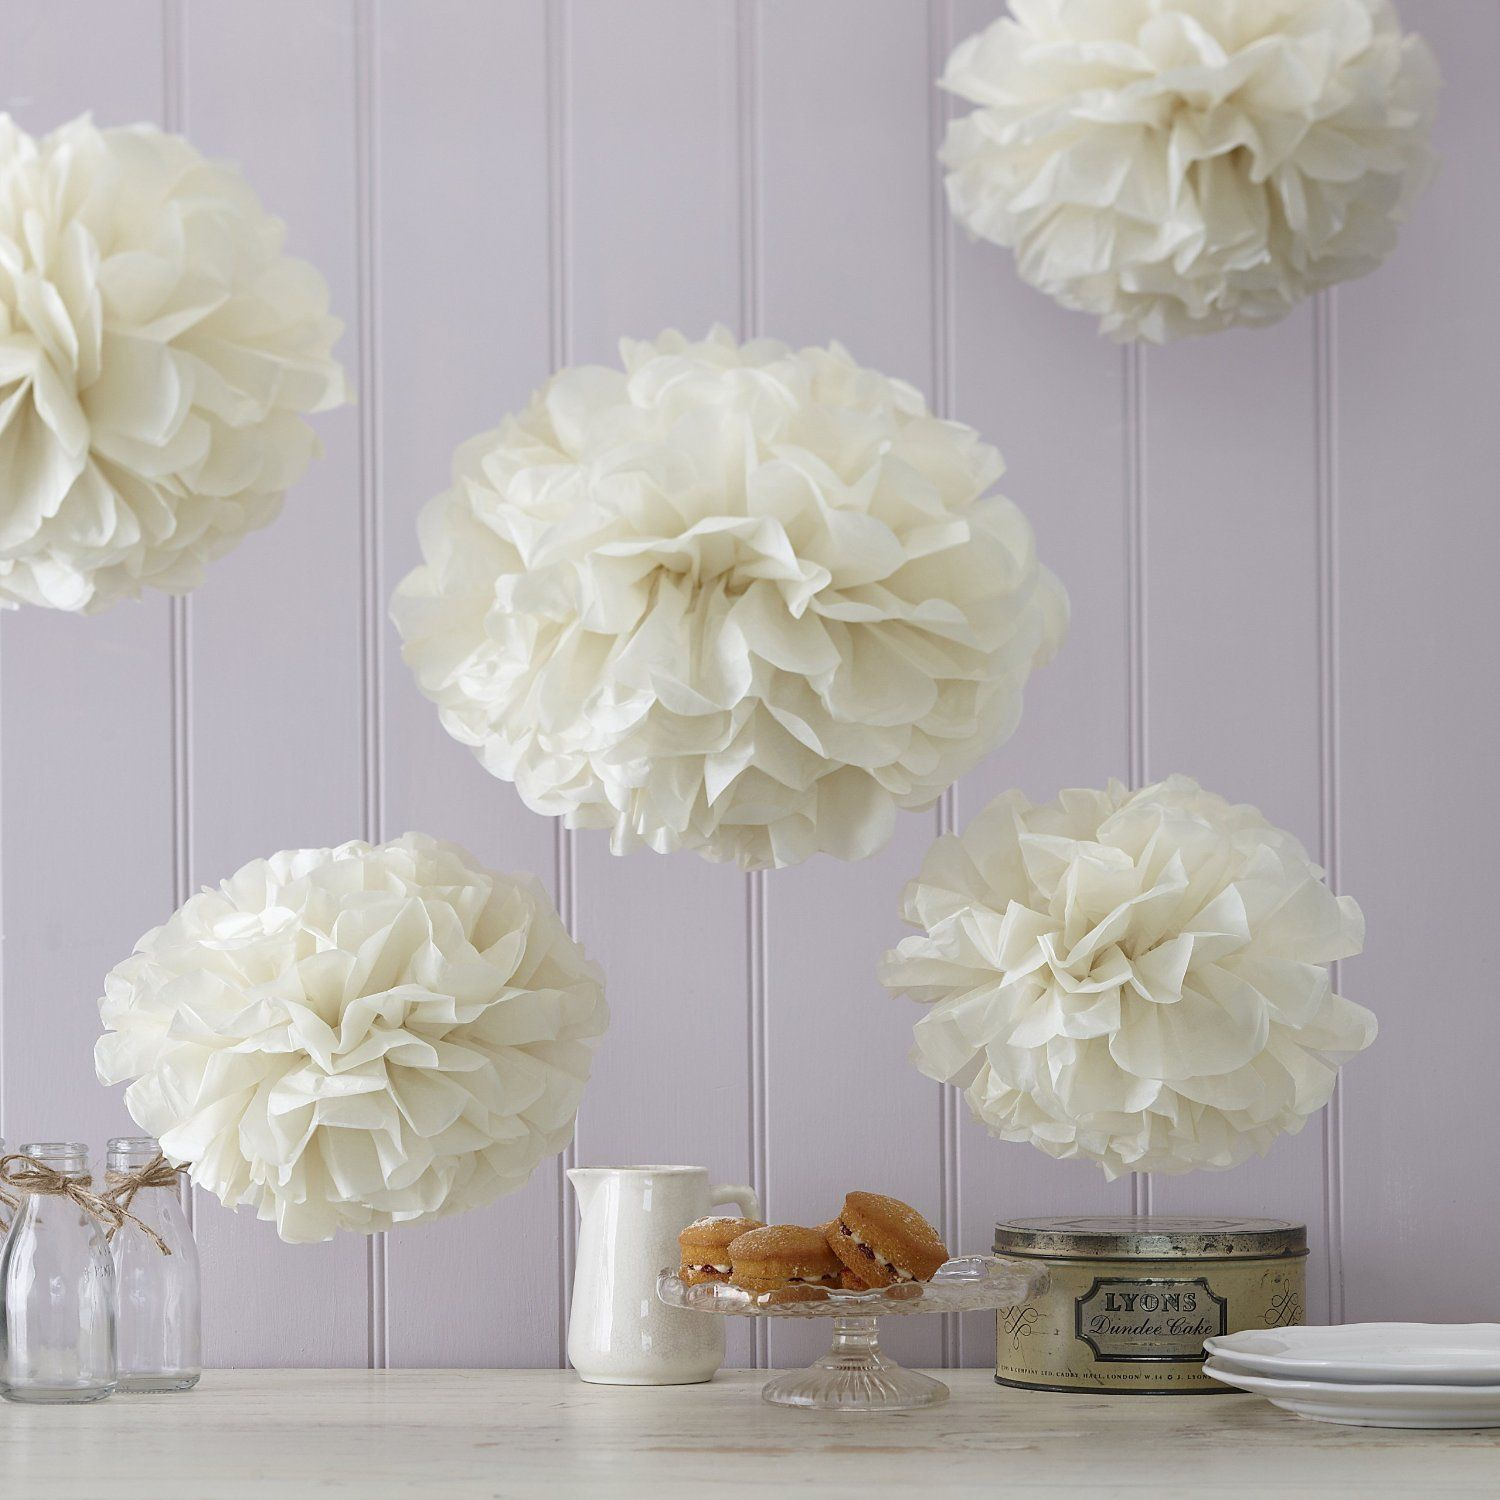 Amazon.com: Ginger Ray Vintage Lace Tissue Paper Pom Poms Wedding ...